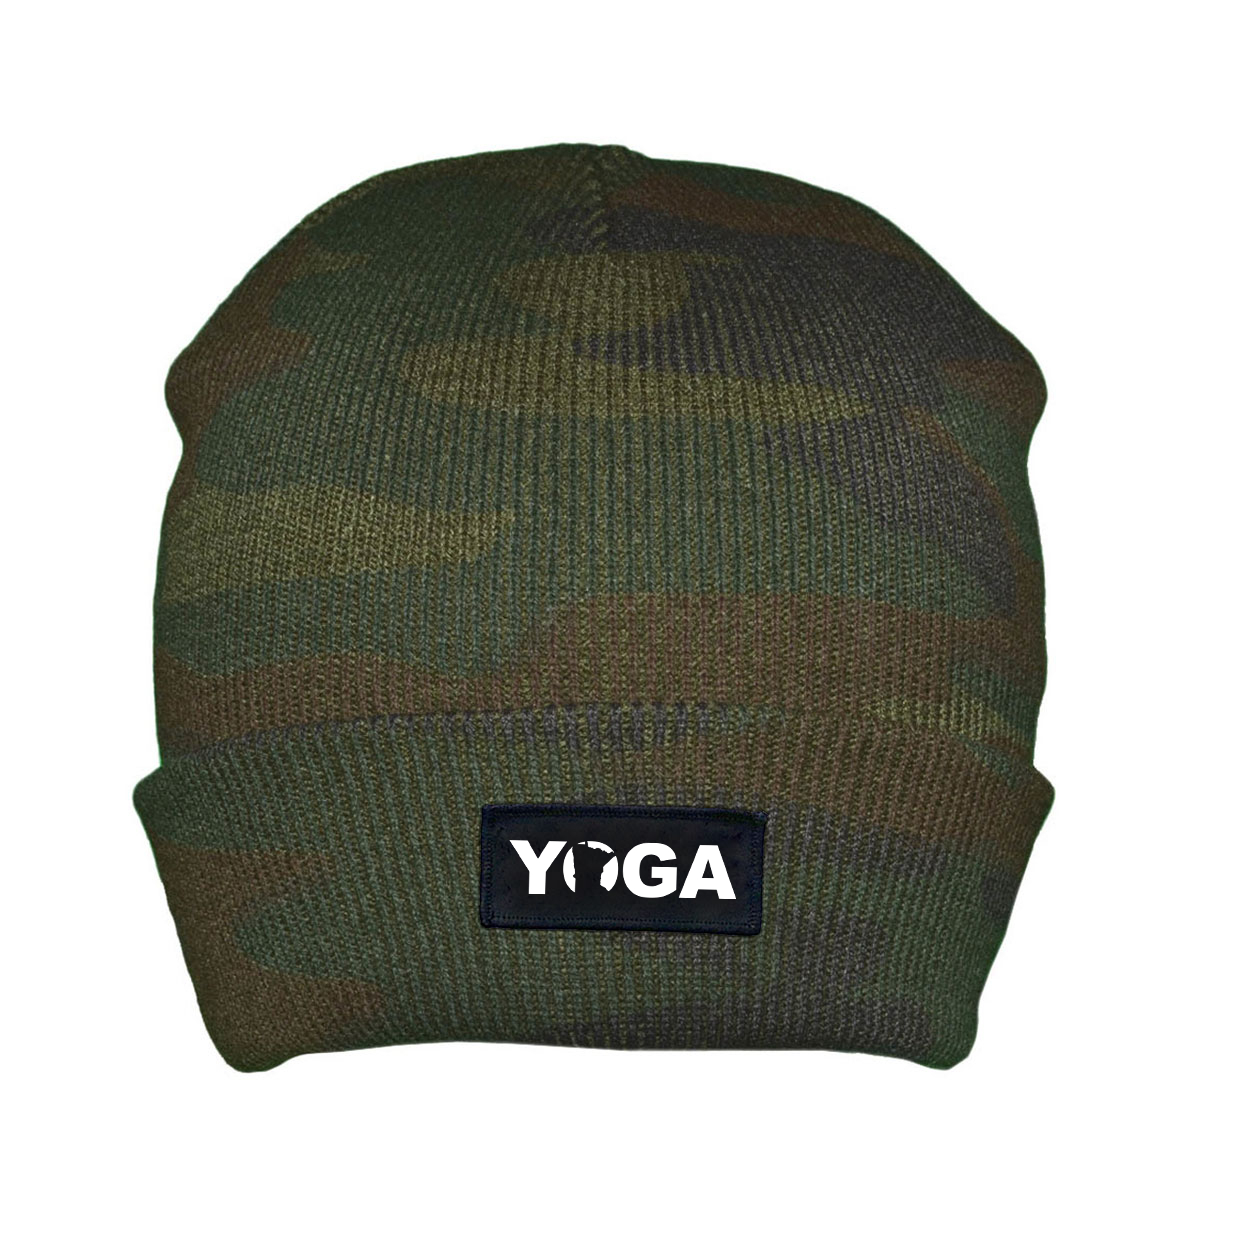 Yoga Minnesota Night Out Woven Patch Roll Up Skully Beanie Camo (White Logo)